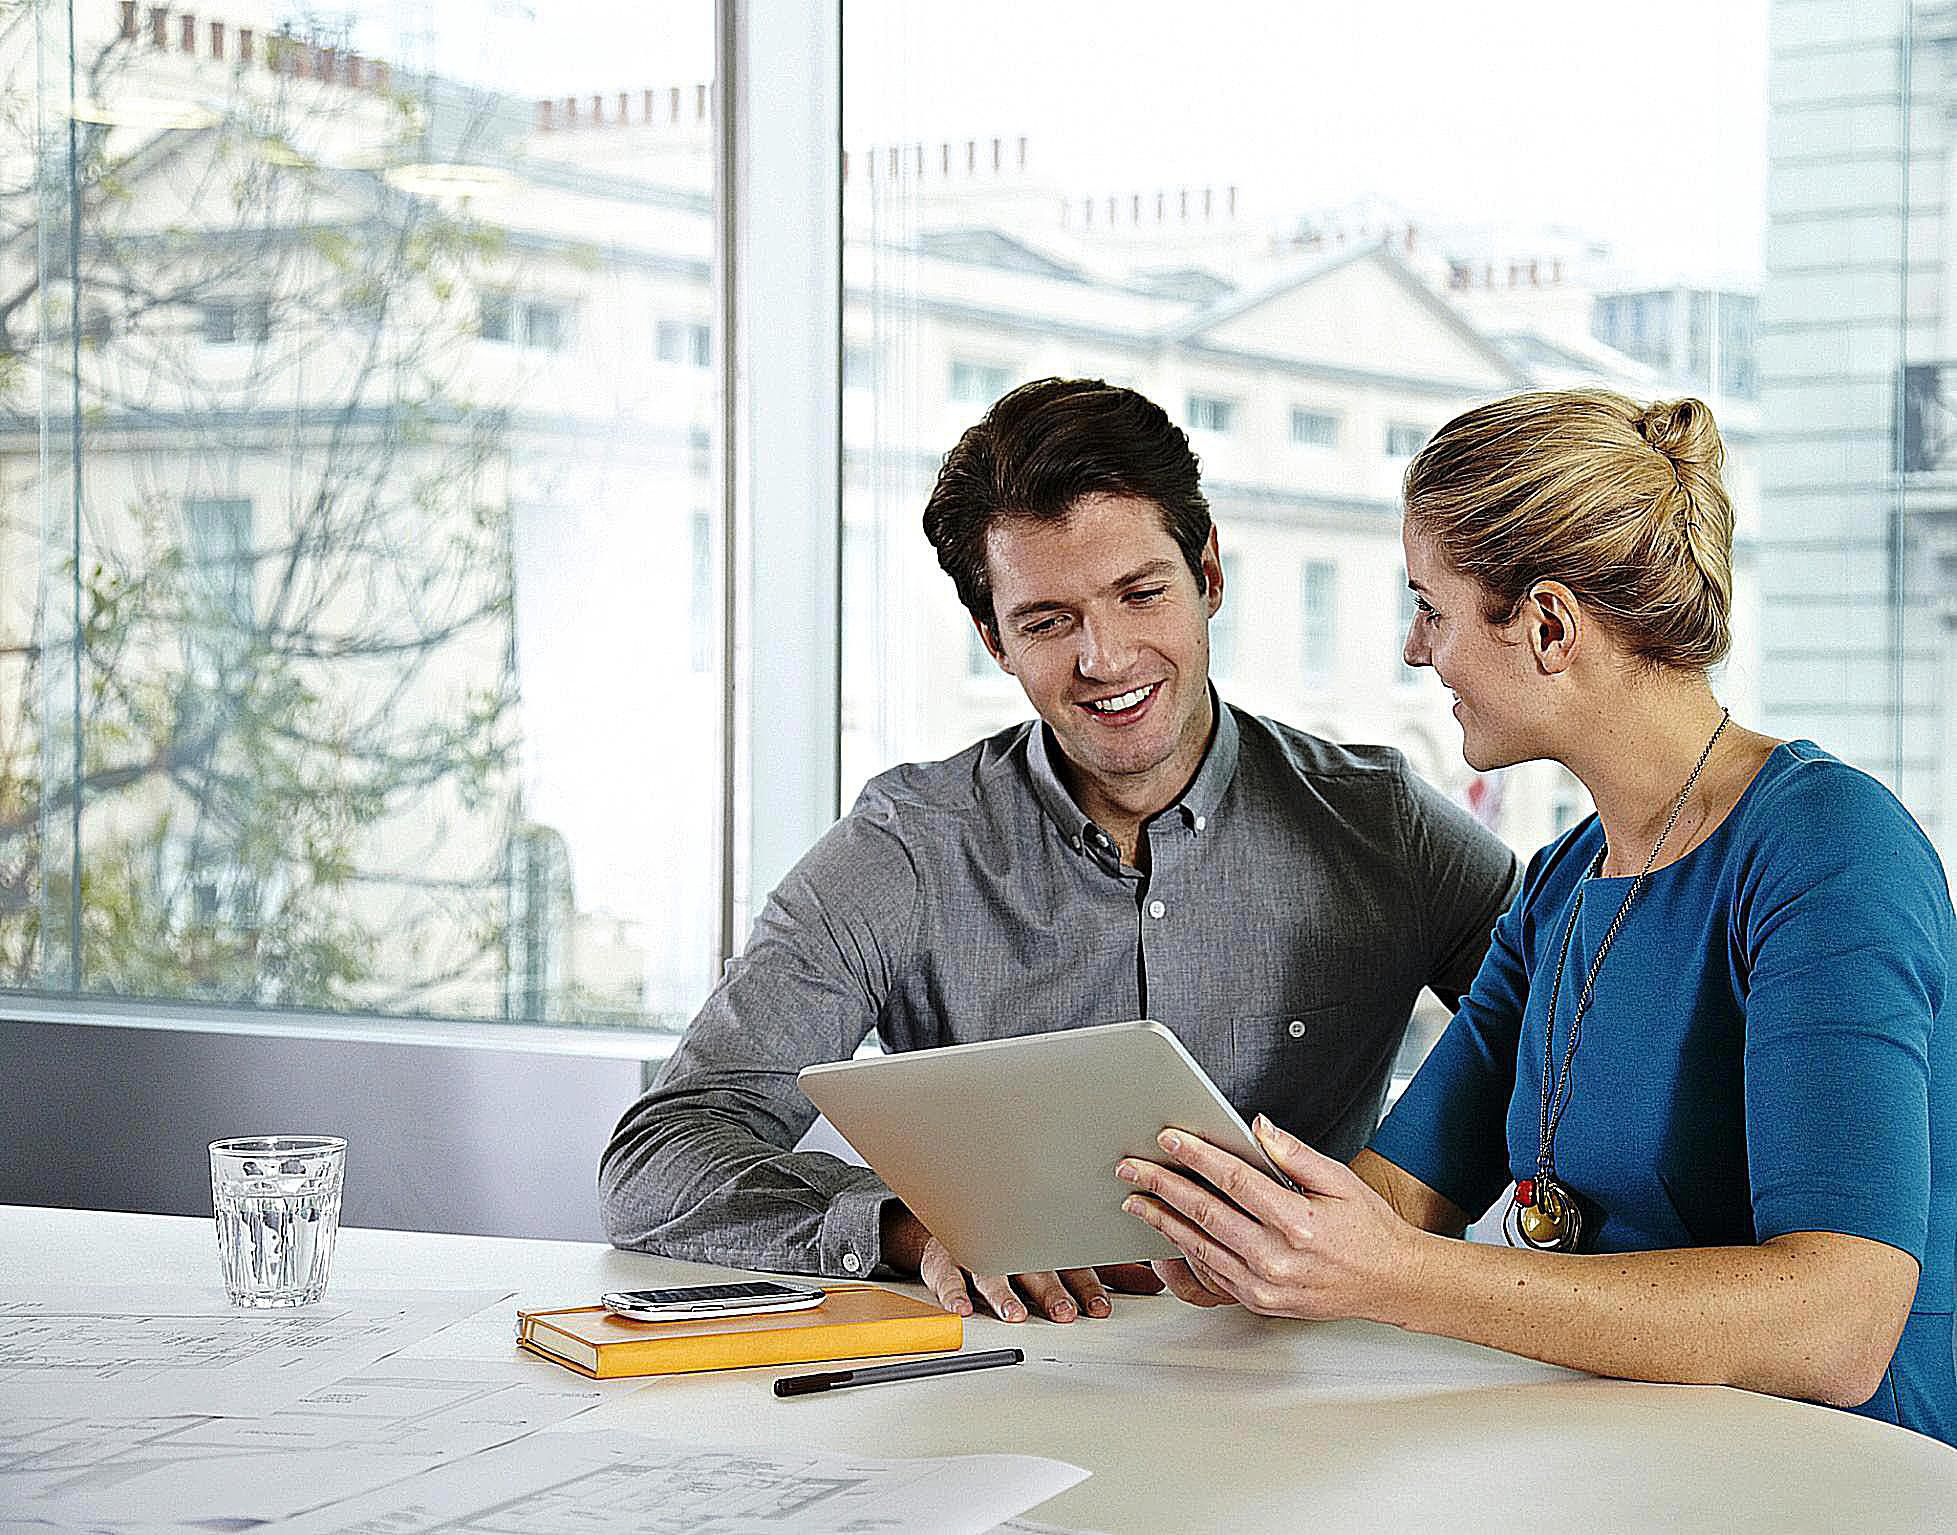 Man and woman working together on a tablet